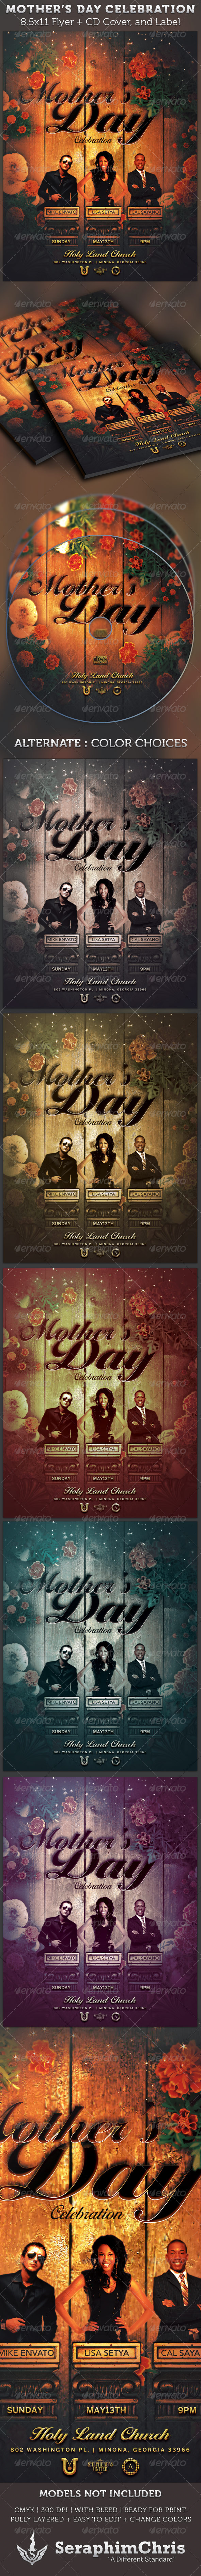 Graphic River Mother's Day Celebration Flyer and CD Cover Print Templates -  Flyers  Church 2129259